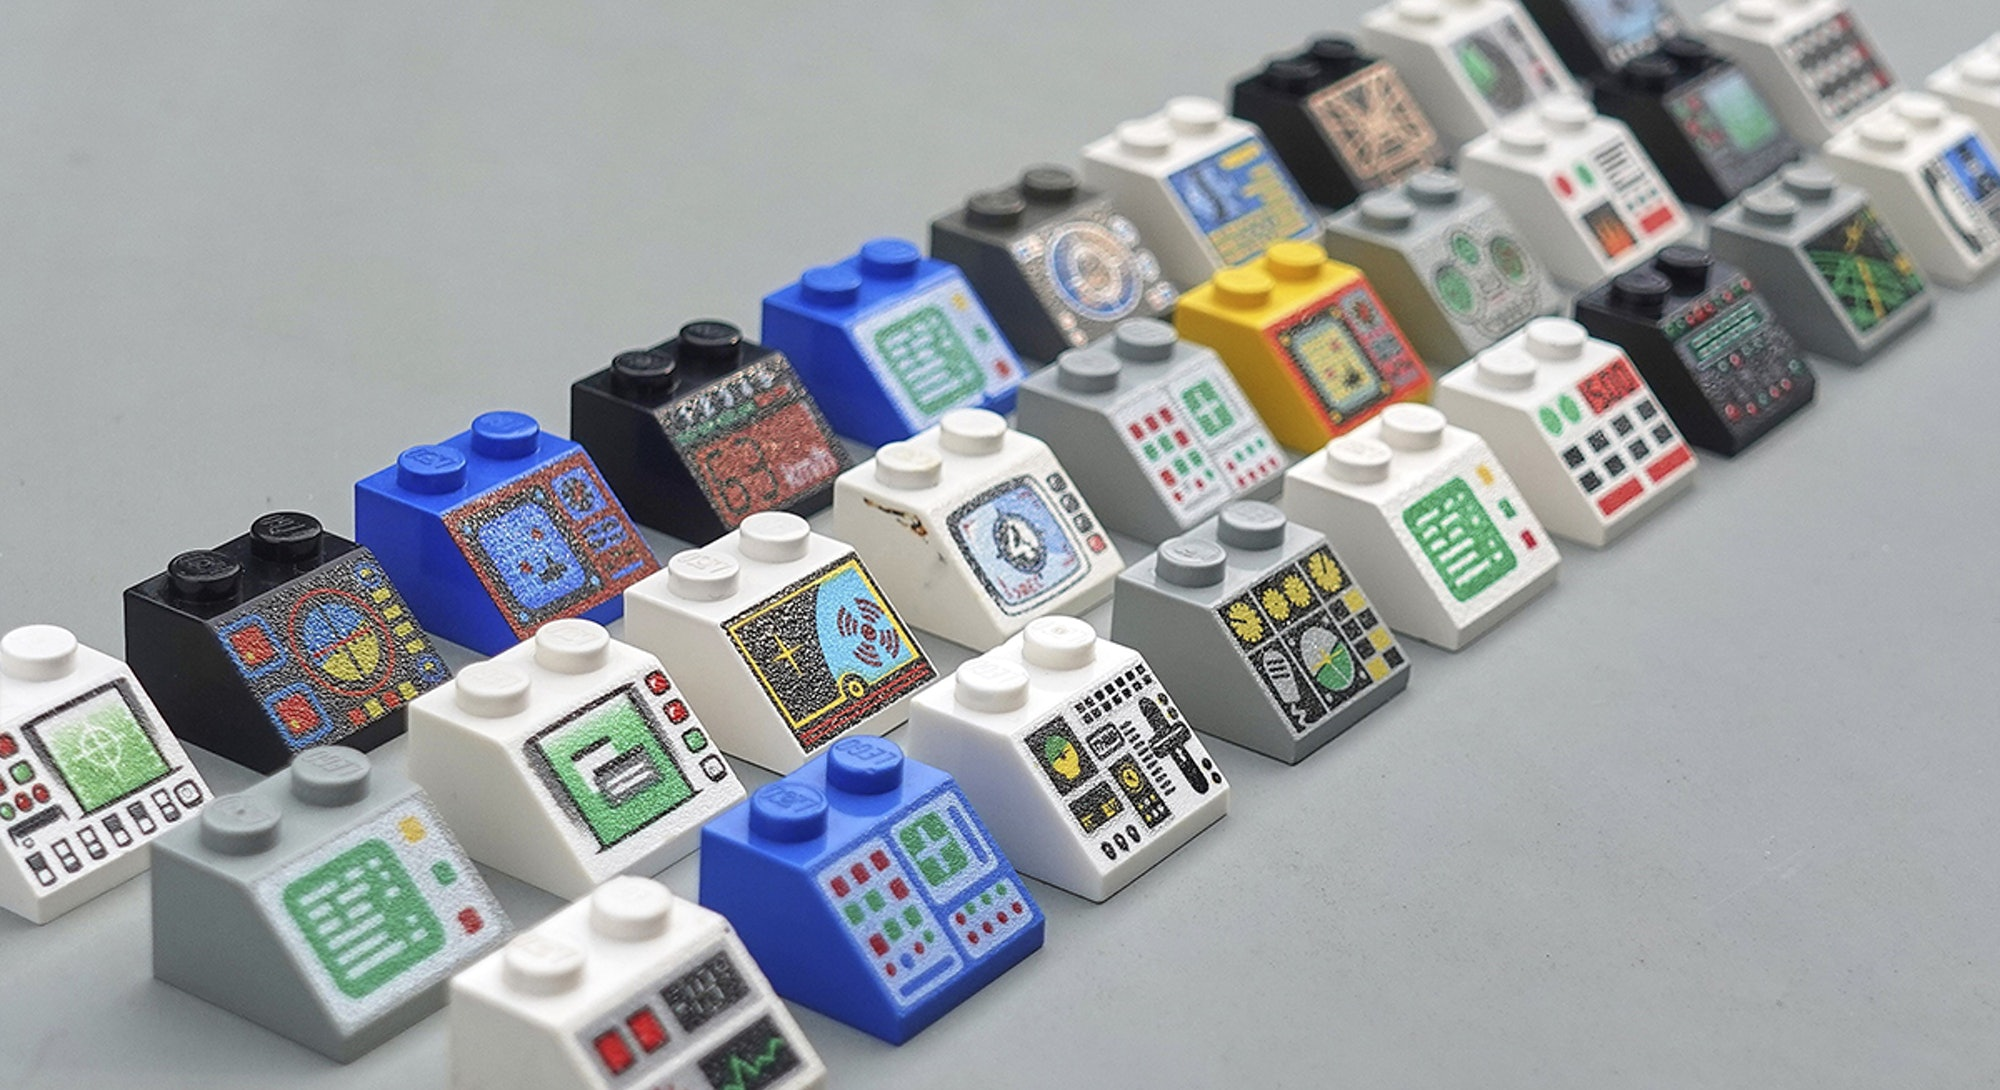 A selection of Lego control panels